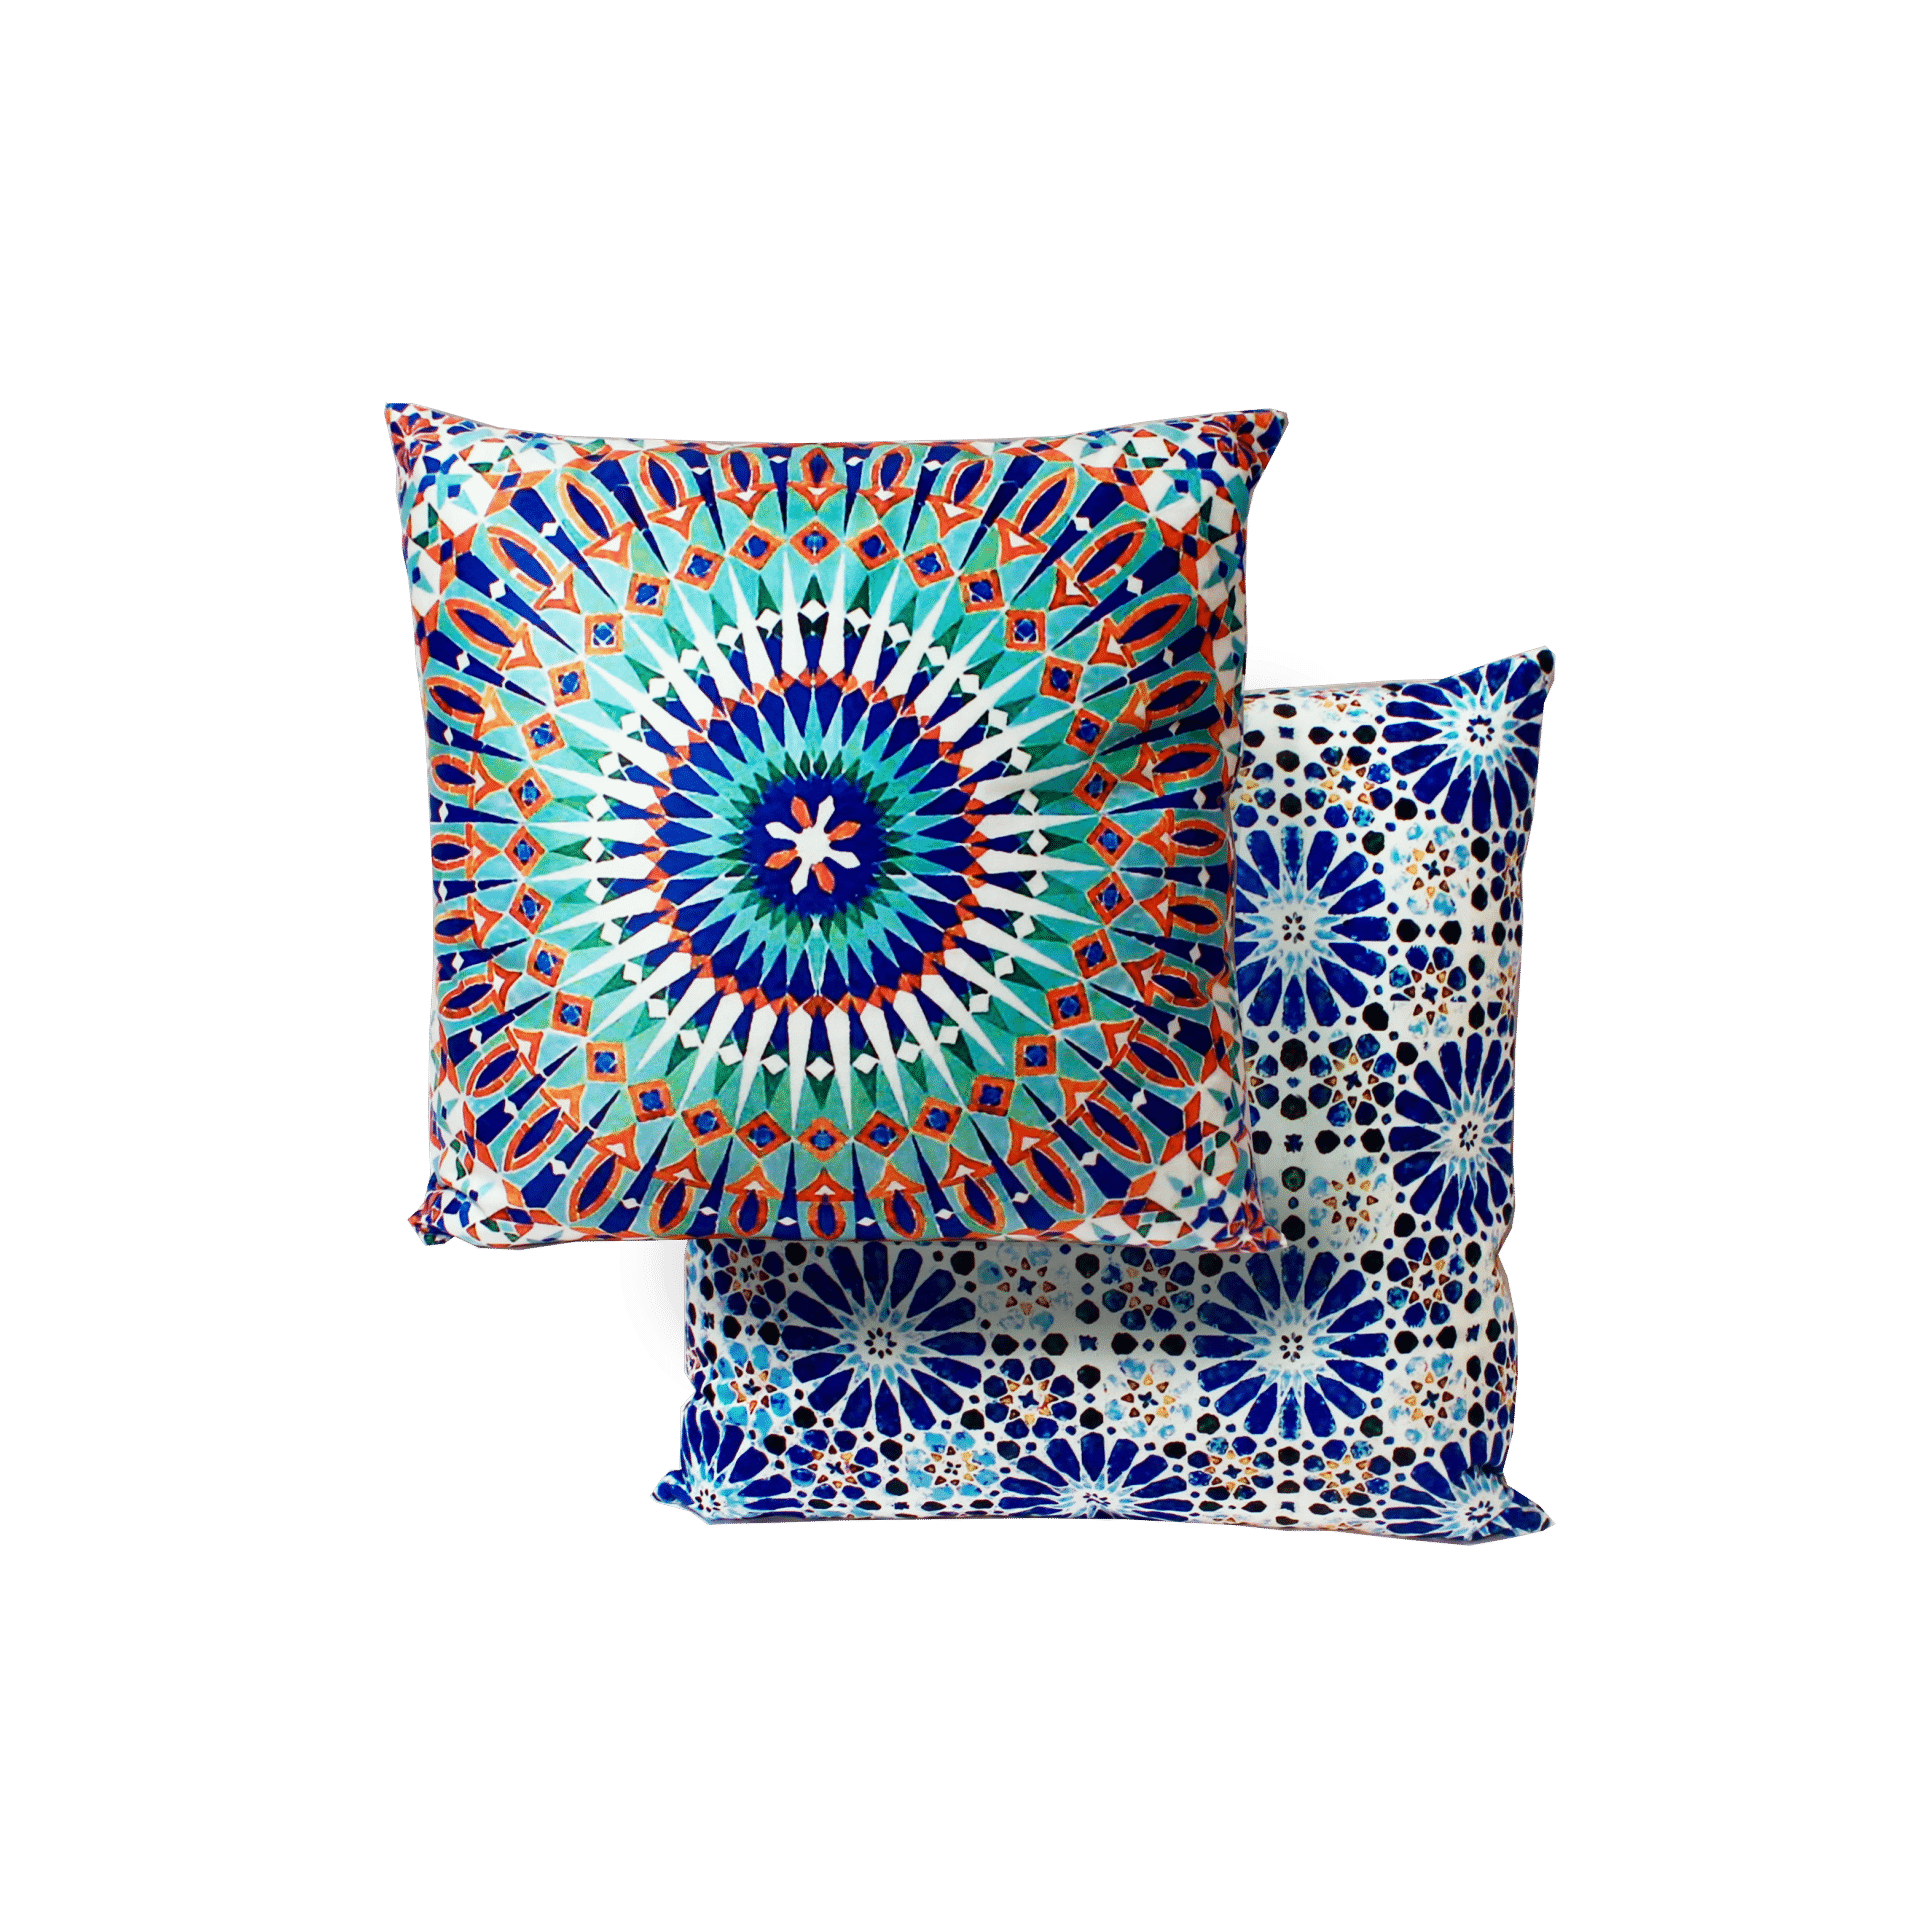 Moroccan Scroll Tile Light Blue Handmade Persian Style: Velvet Cushion Square